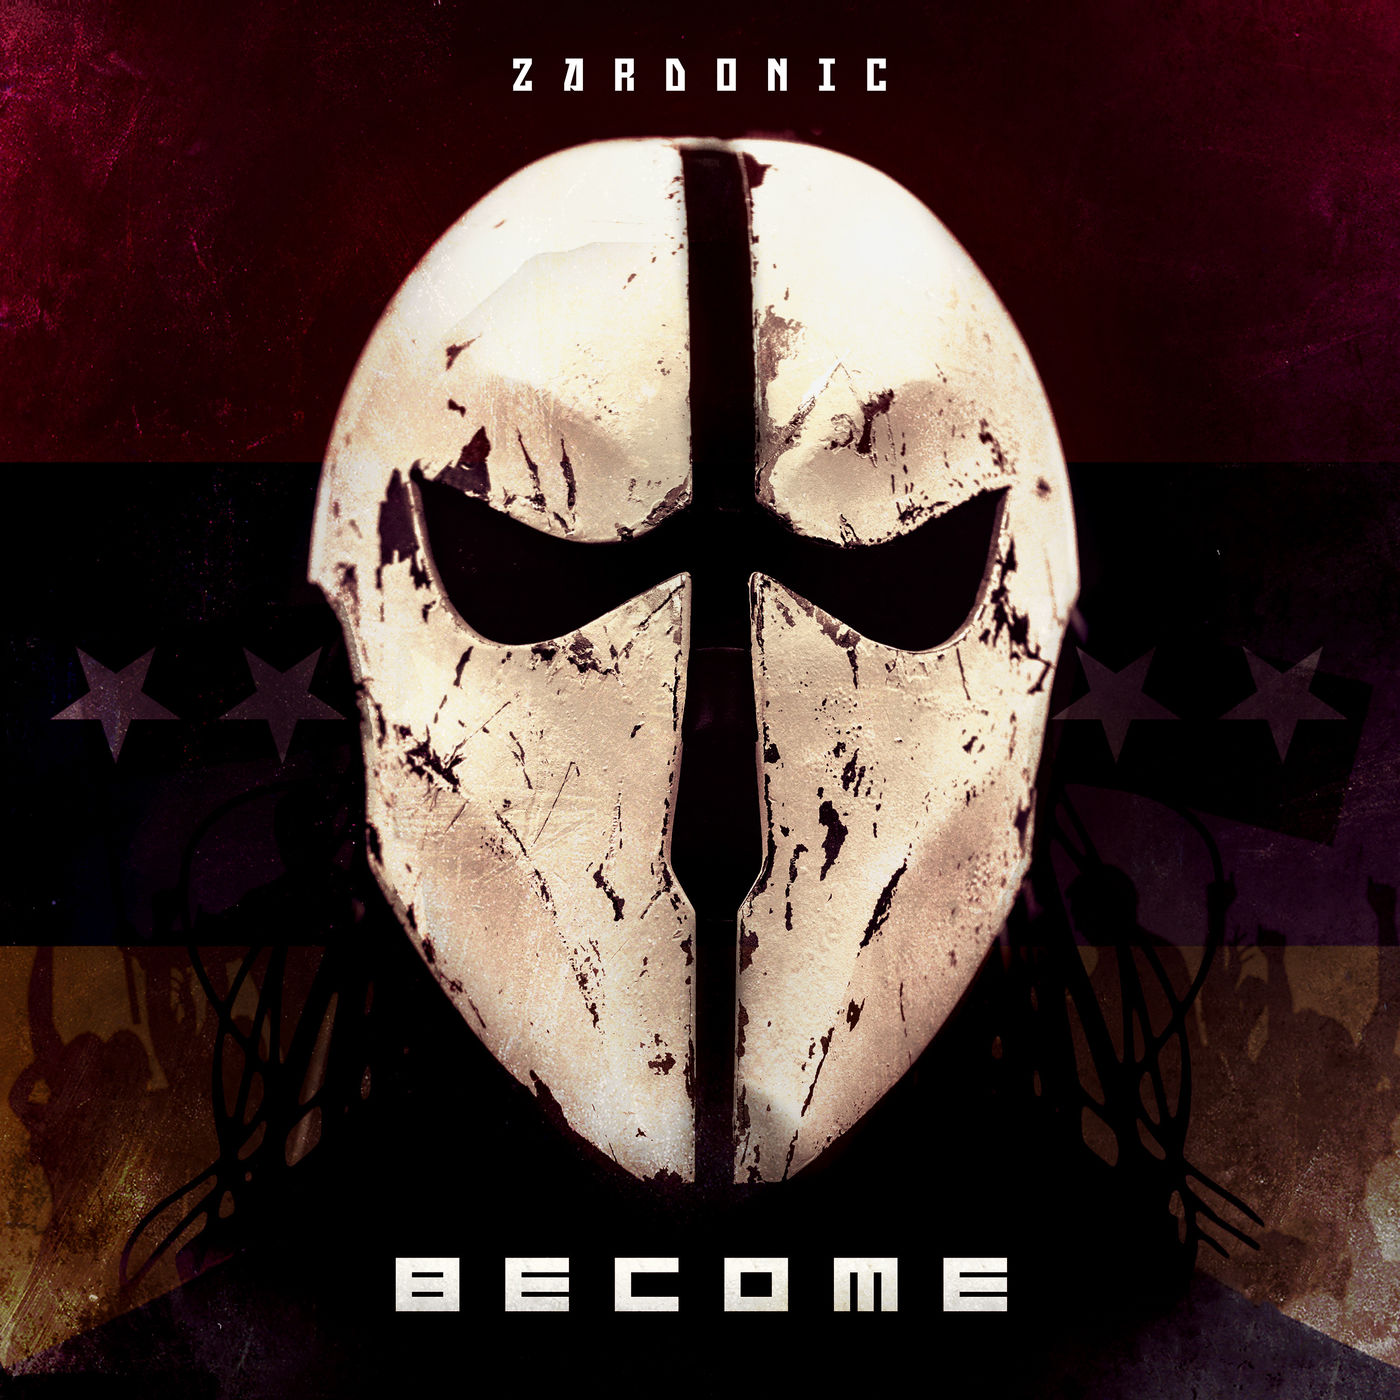 Download torrent Zardonic - Become (2018)